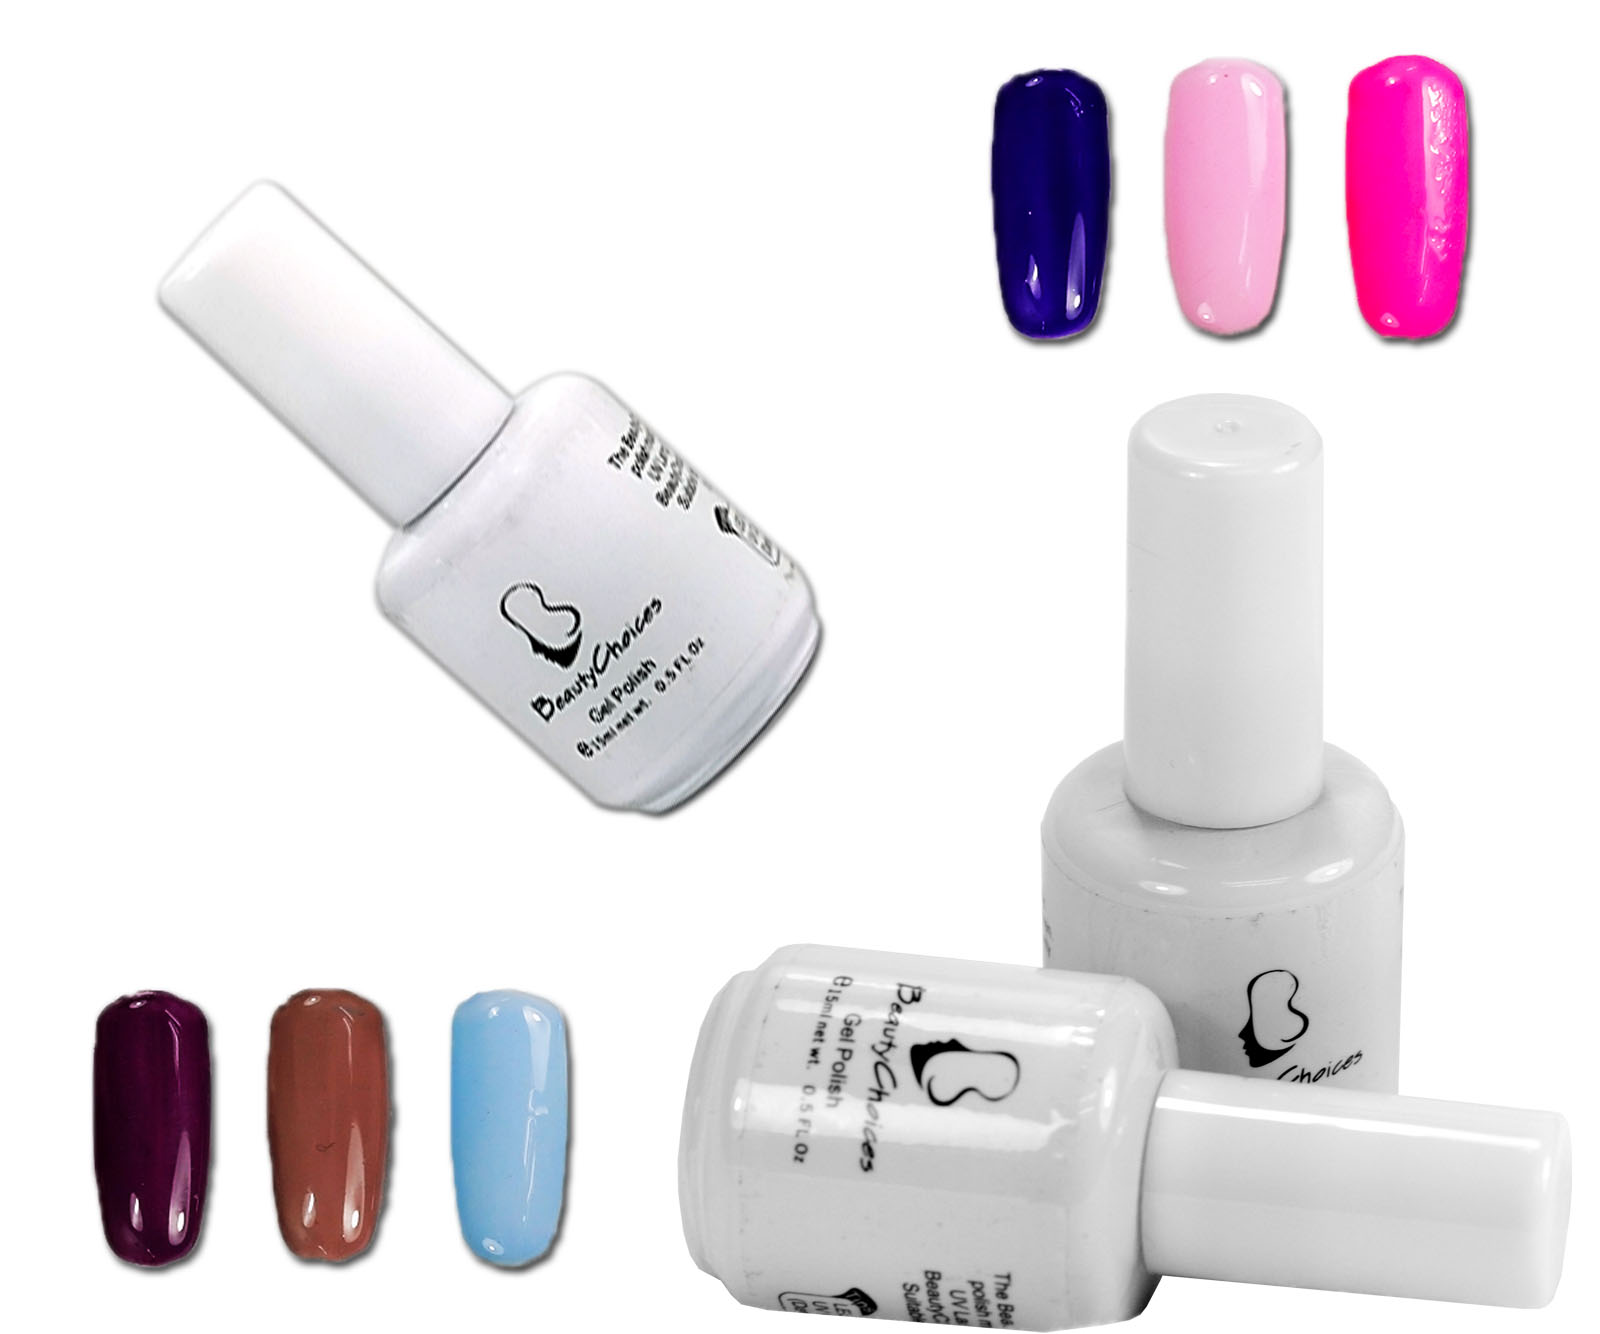 Nail Polish Tips: 12pcs Mix Color Nail Art Tips Soak Off UV Gel Polish W/Top